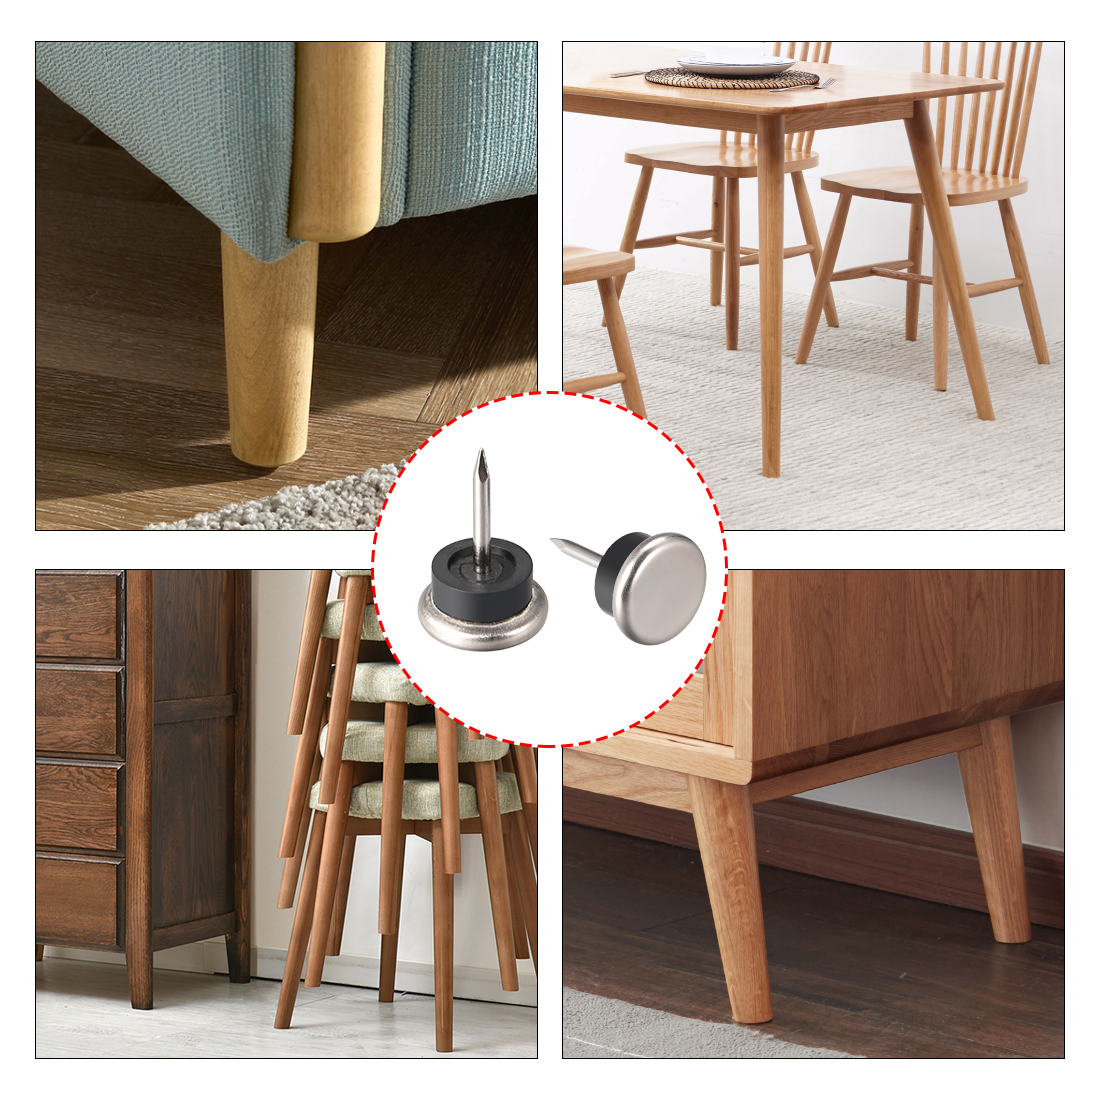 Nail On Furniture Pads Nickel Base Chair Table Leg Protector 19mm Dia 4pcs - image 2 of 3